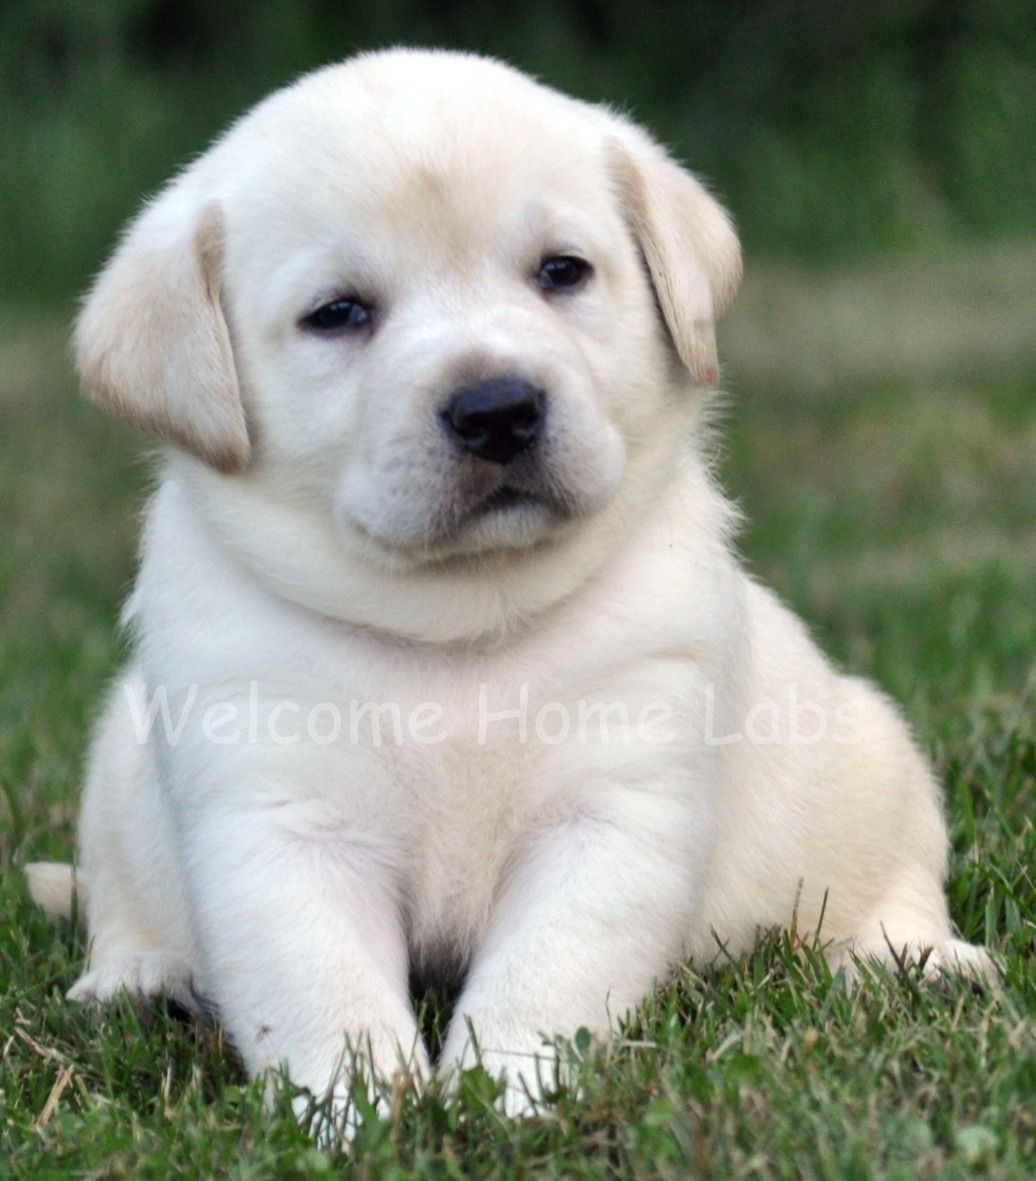 Yellow Lab Puppy From Wwwwelcomehomelabscom Labrador Puppies